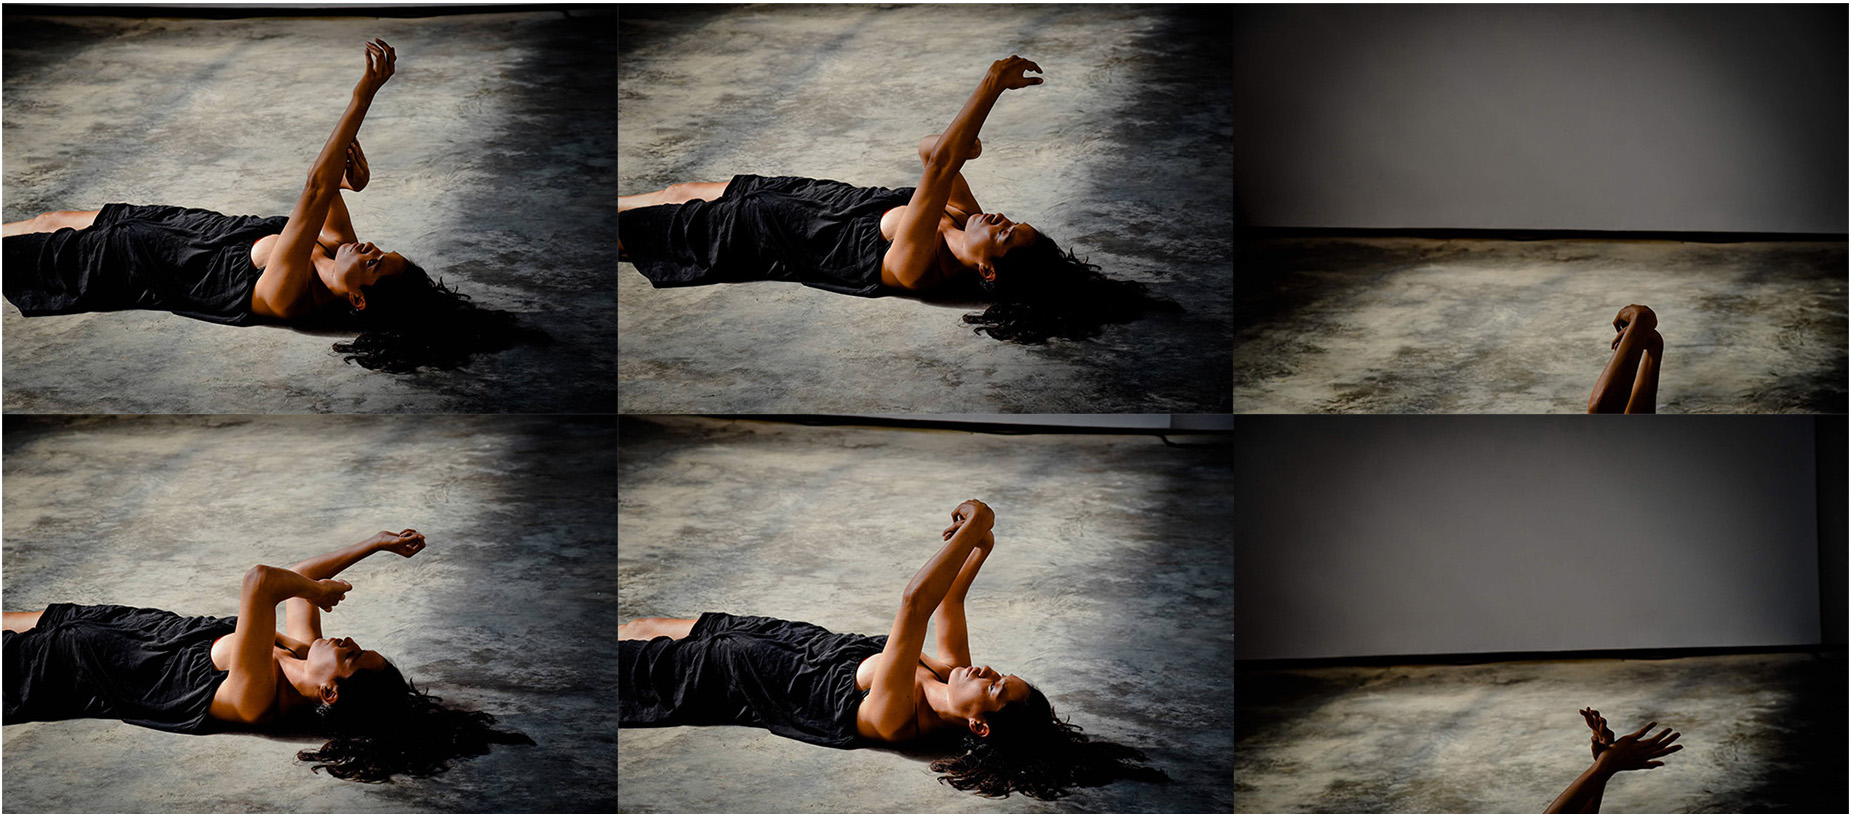 A composite image of 6 image stills of Pelenakeke's arms in the air, dancing. Photo credit: Vladimir Radojicic. Image from July 2018, Denniston Hill, performance.